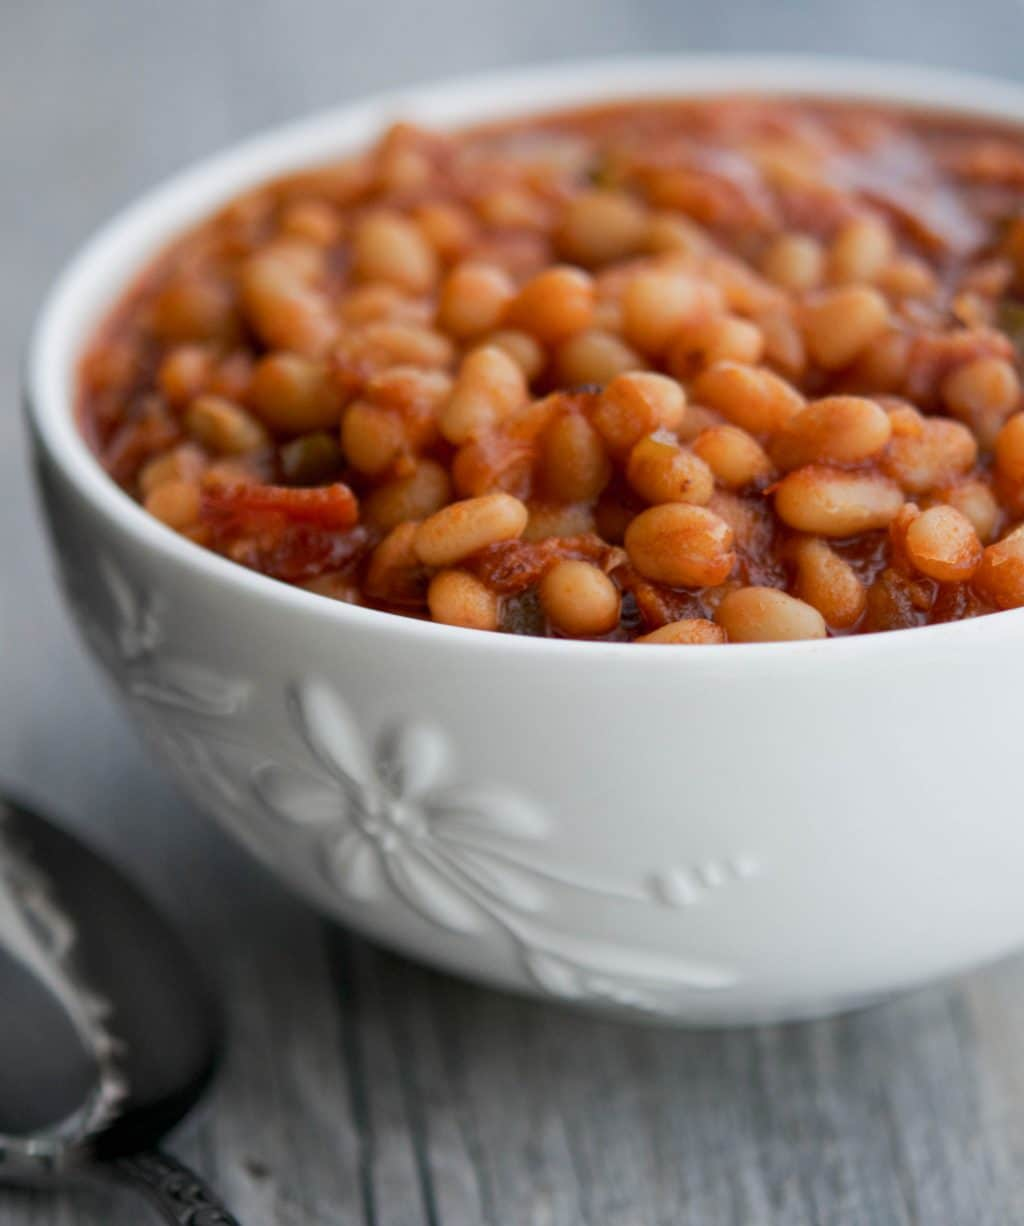 Maple Brown Sugar Baked Beans - Carrie's Experimental Kitchen